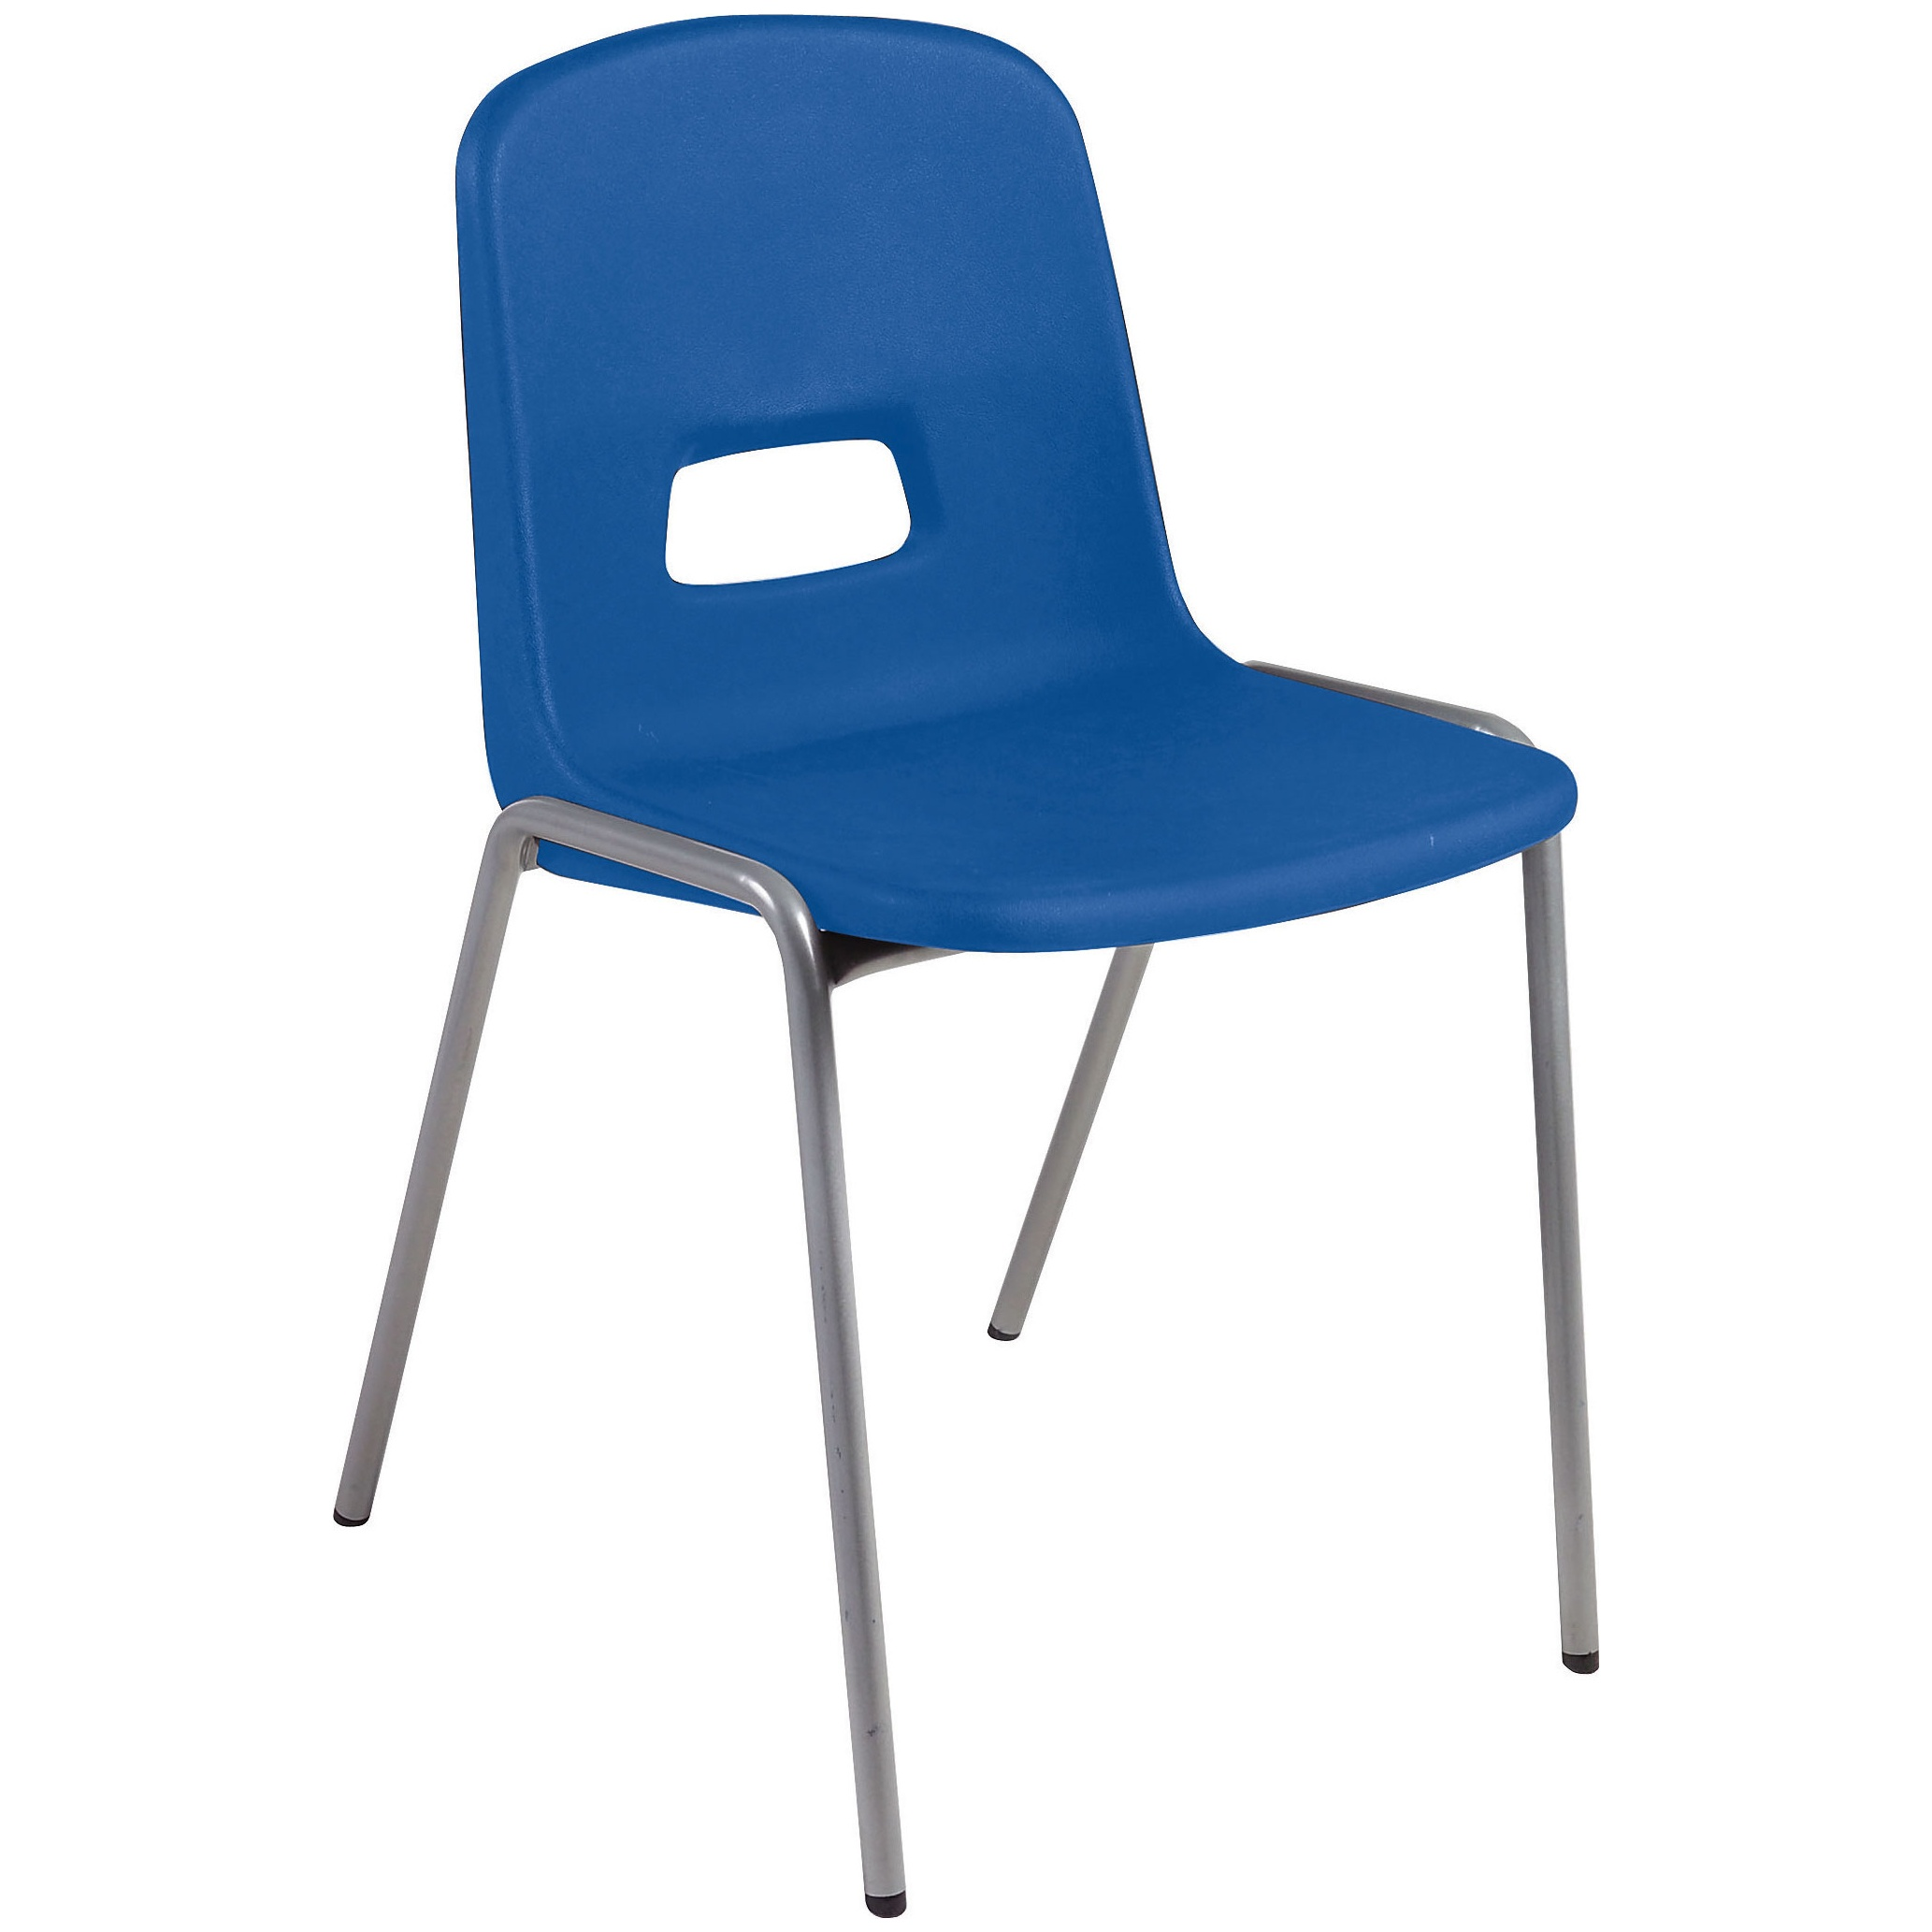 Classic GH20 Classroom Chairs | Classroom Chairs